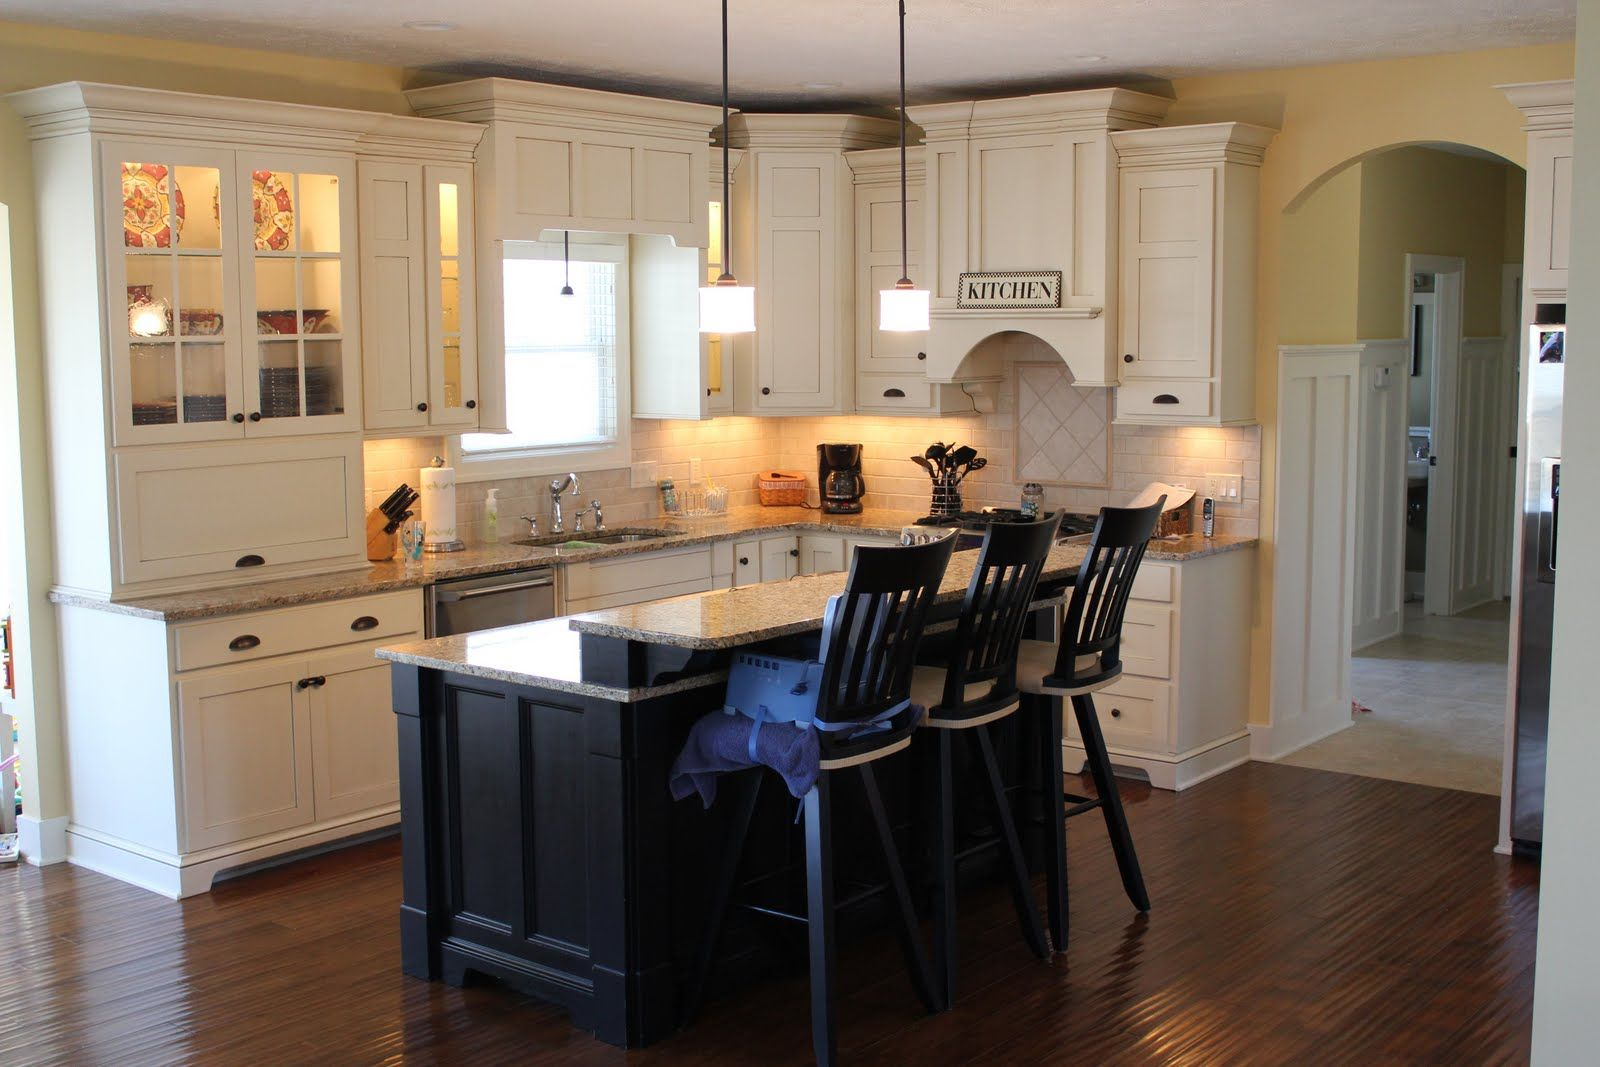 of white cabinets and benjamin moore hawthorne yellow walls kitchen colors kitchen design on kitchen interior yellow and white id=37264